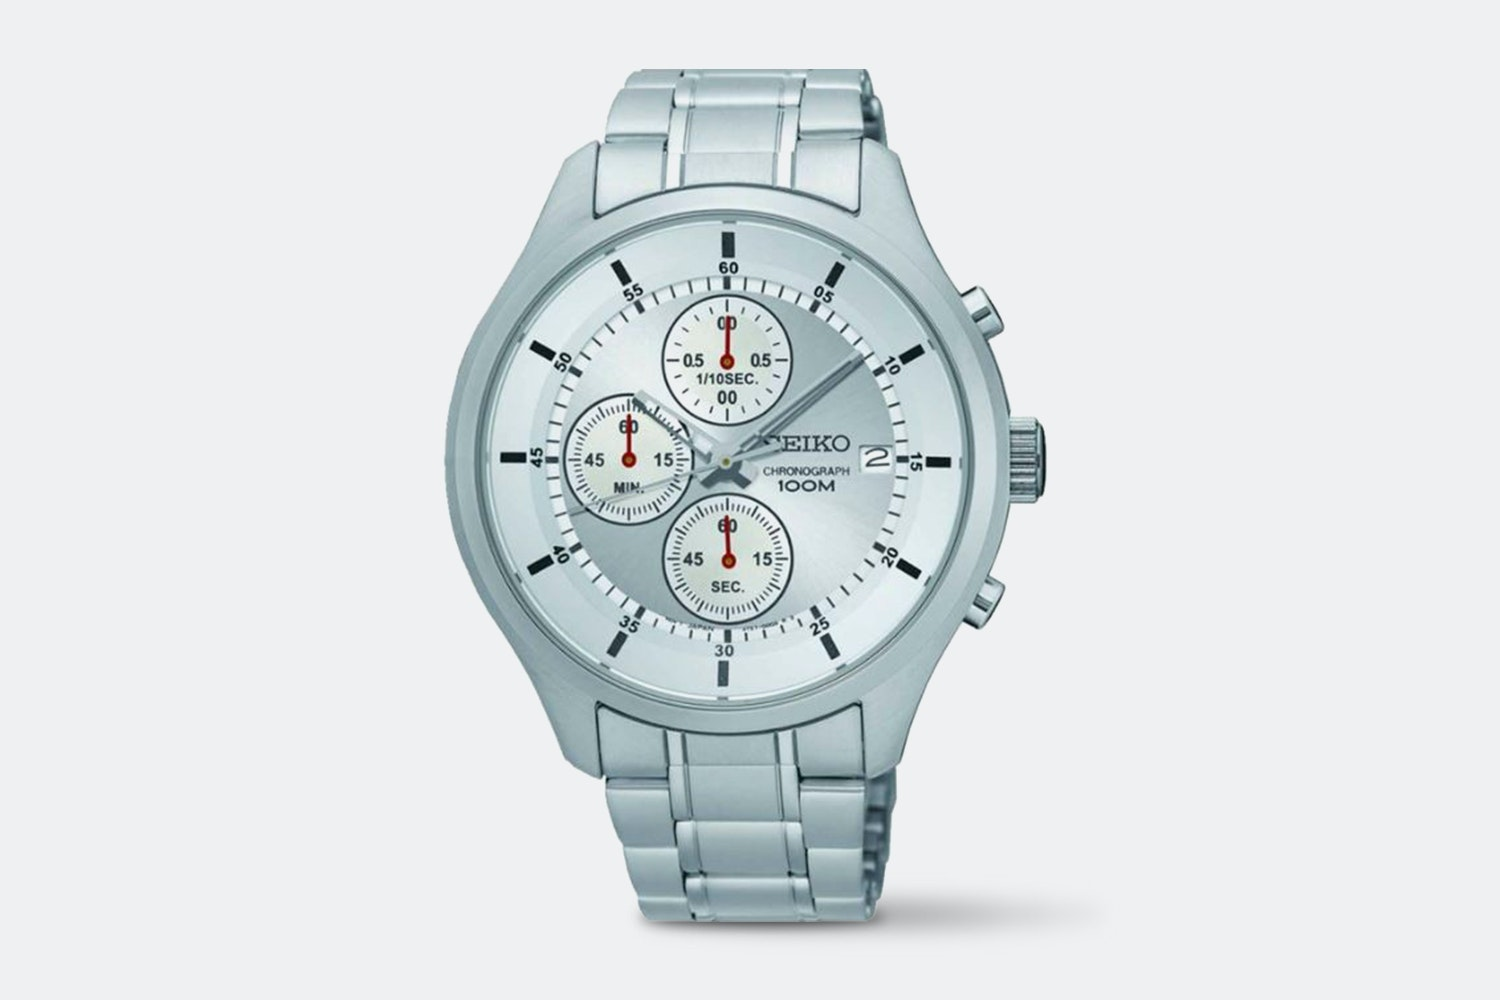 Seiko SKS Chronograph Quartz Watch